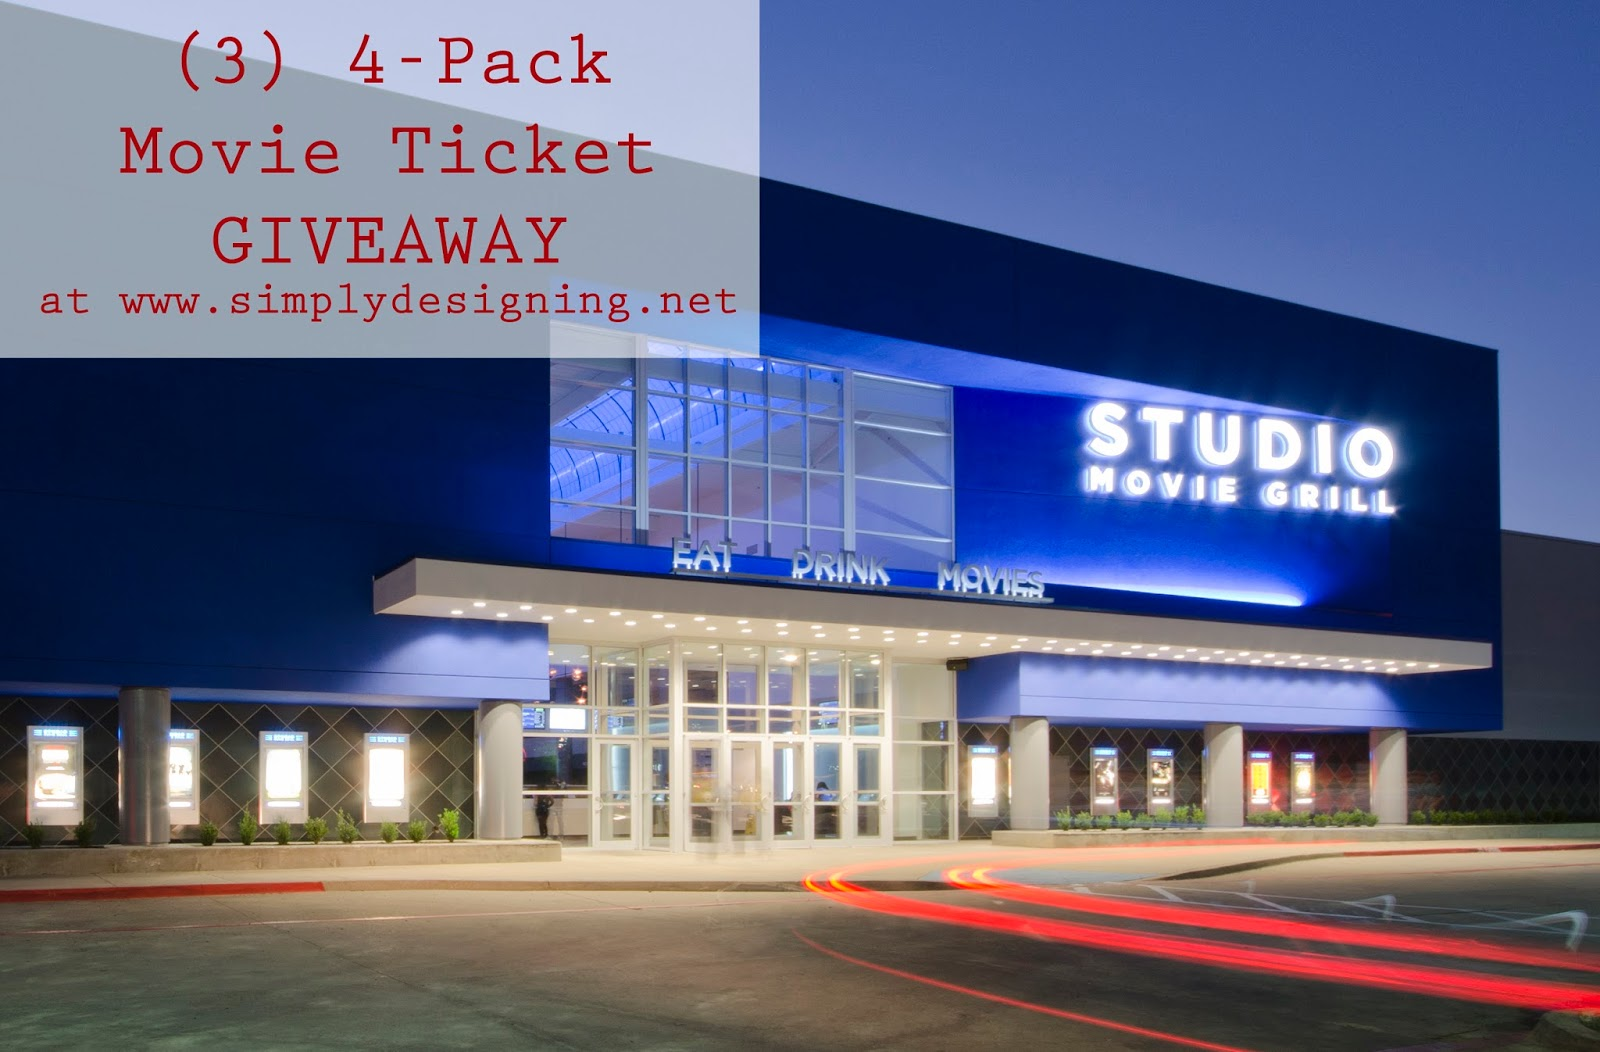 Movie Park Coupon Coupons For Studio Movie Grill Scottsdale Tarot Deals